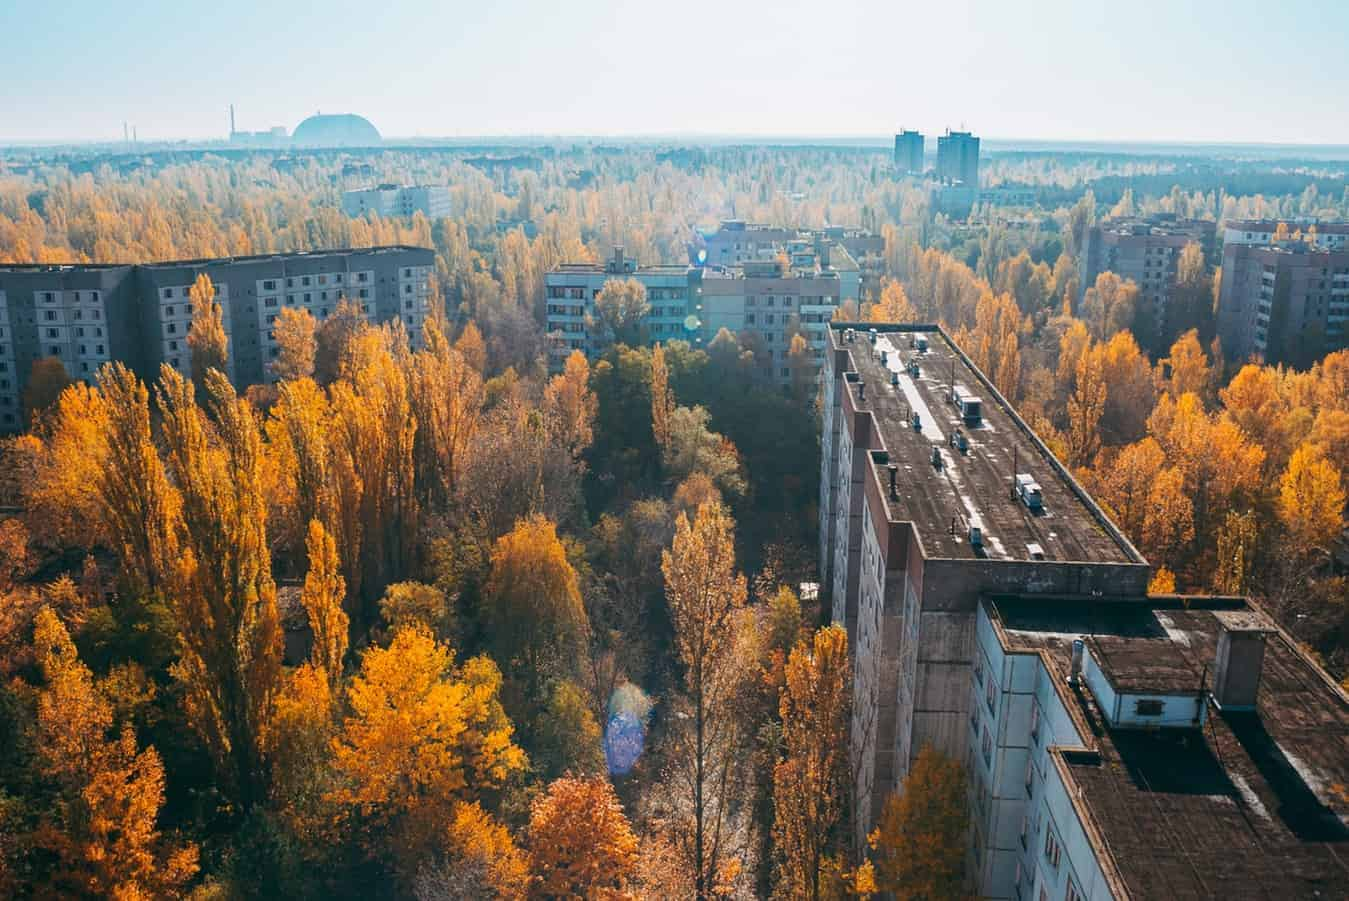 A view from the highest apartment building in Pripyat, the town nearest Chernobyl nuclear reactor